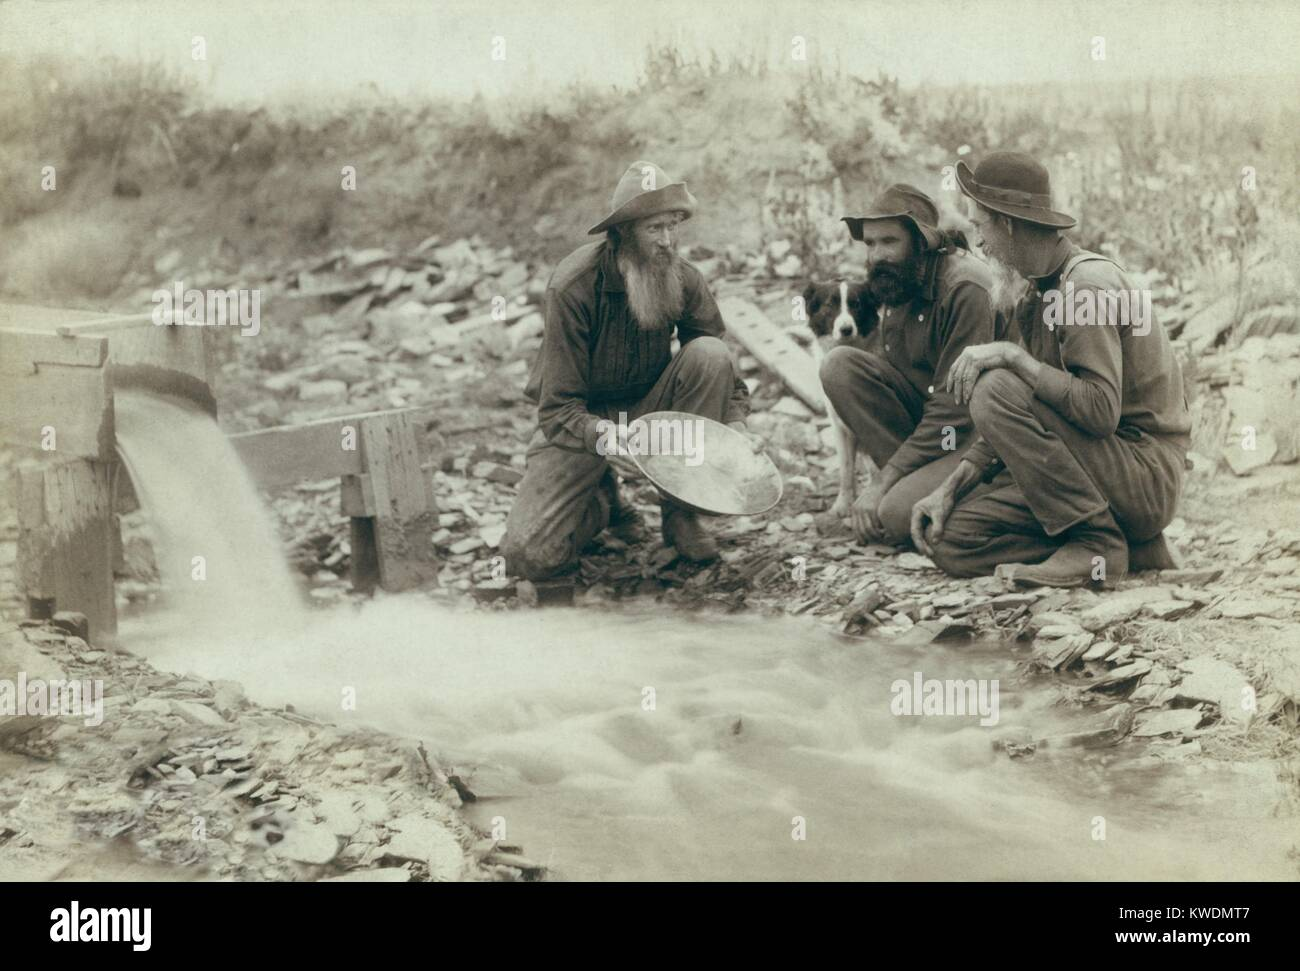 Three men panning for gold in a stream in the Black Hills of South Dakota in 1889. Old timers, Spriggs, Lamb, and - Stock Image